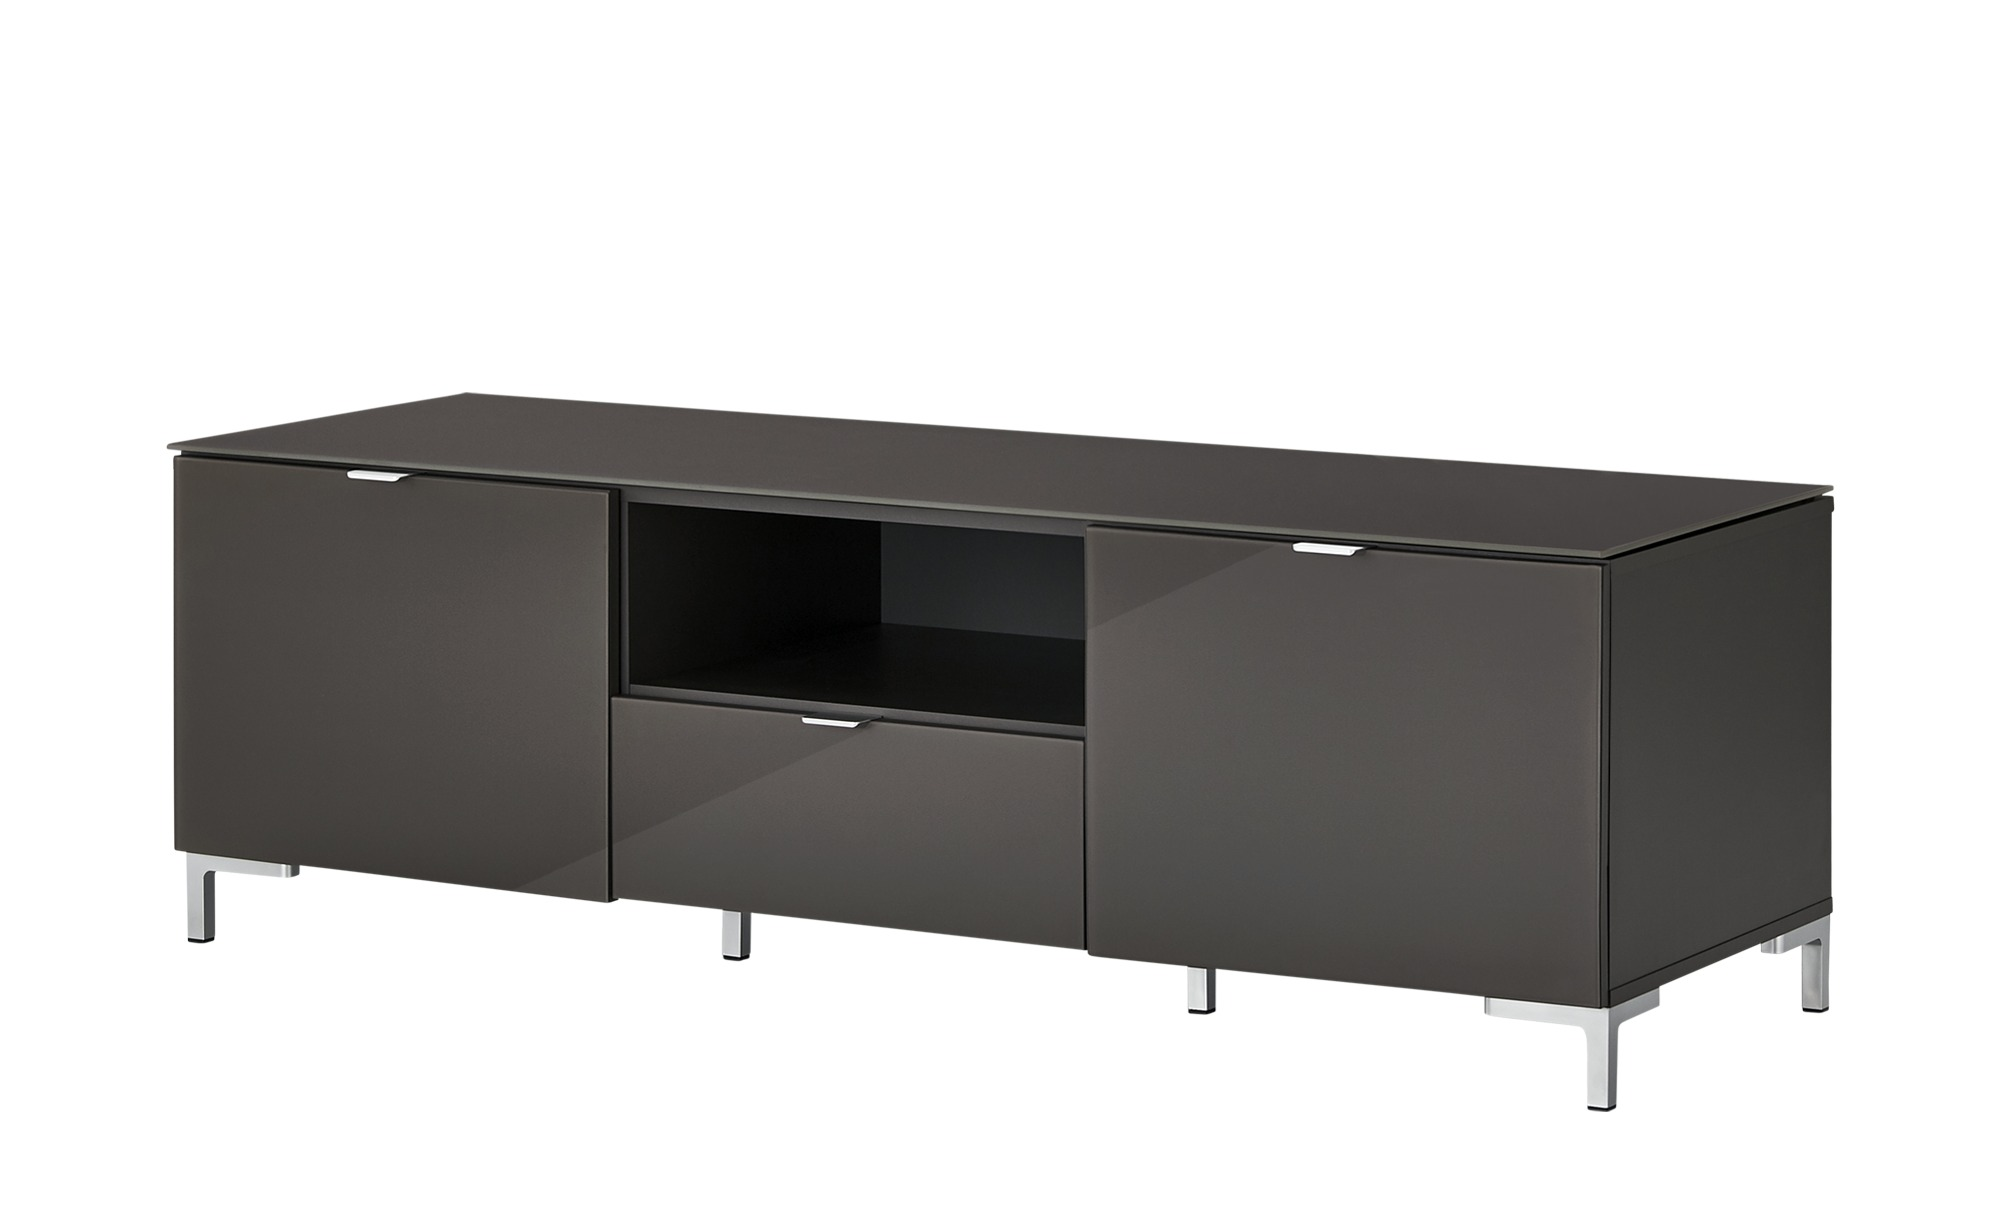 TV- Lowboard  Besano ¦ grau ¦ Maße (cm): B: 150 H: 48,5 T: 52,5 TV- & Media Möbel > TV-Racks - Höffner